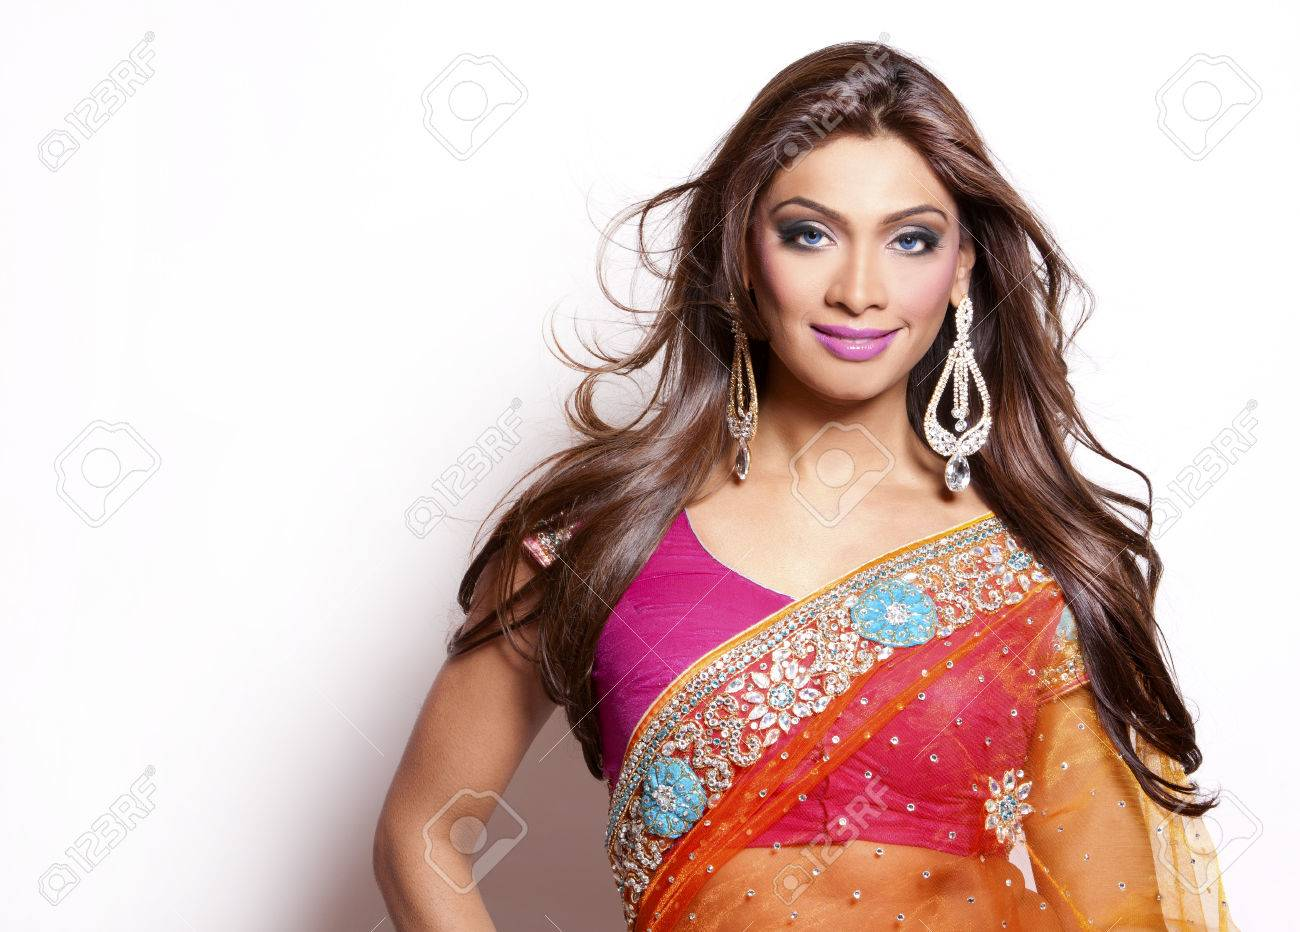 beautiful woman wearing indian traditional outfit on white background Standard-Bild - 28256677